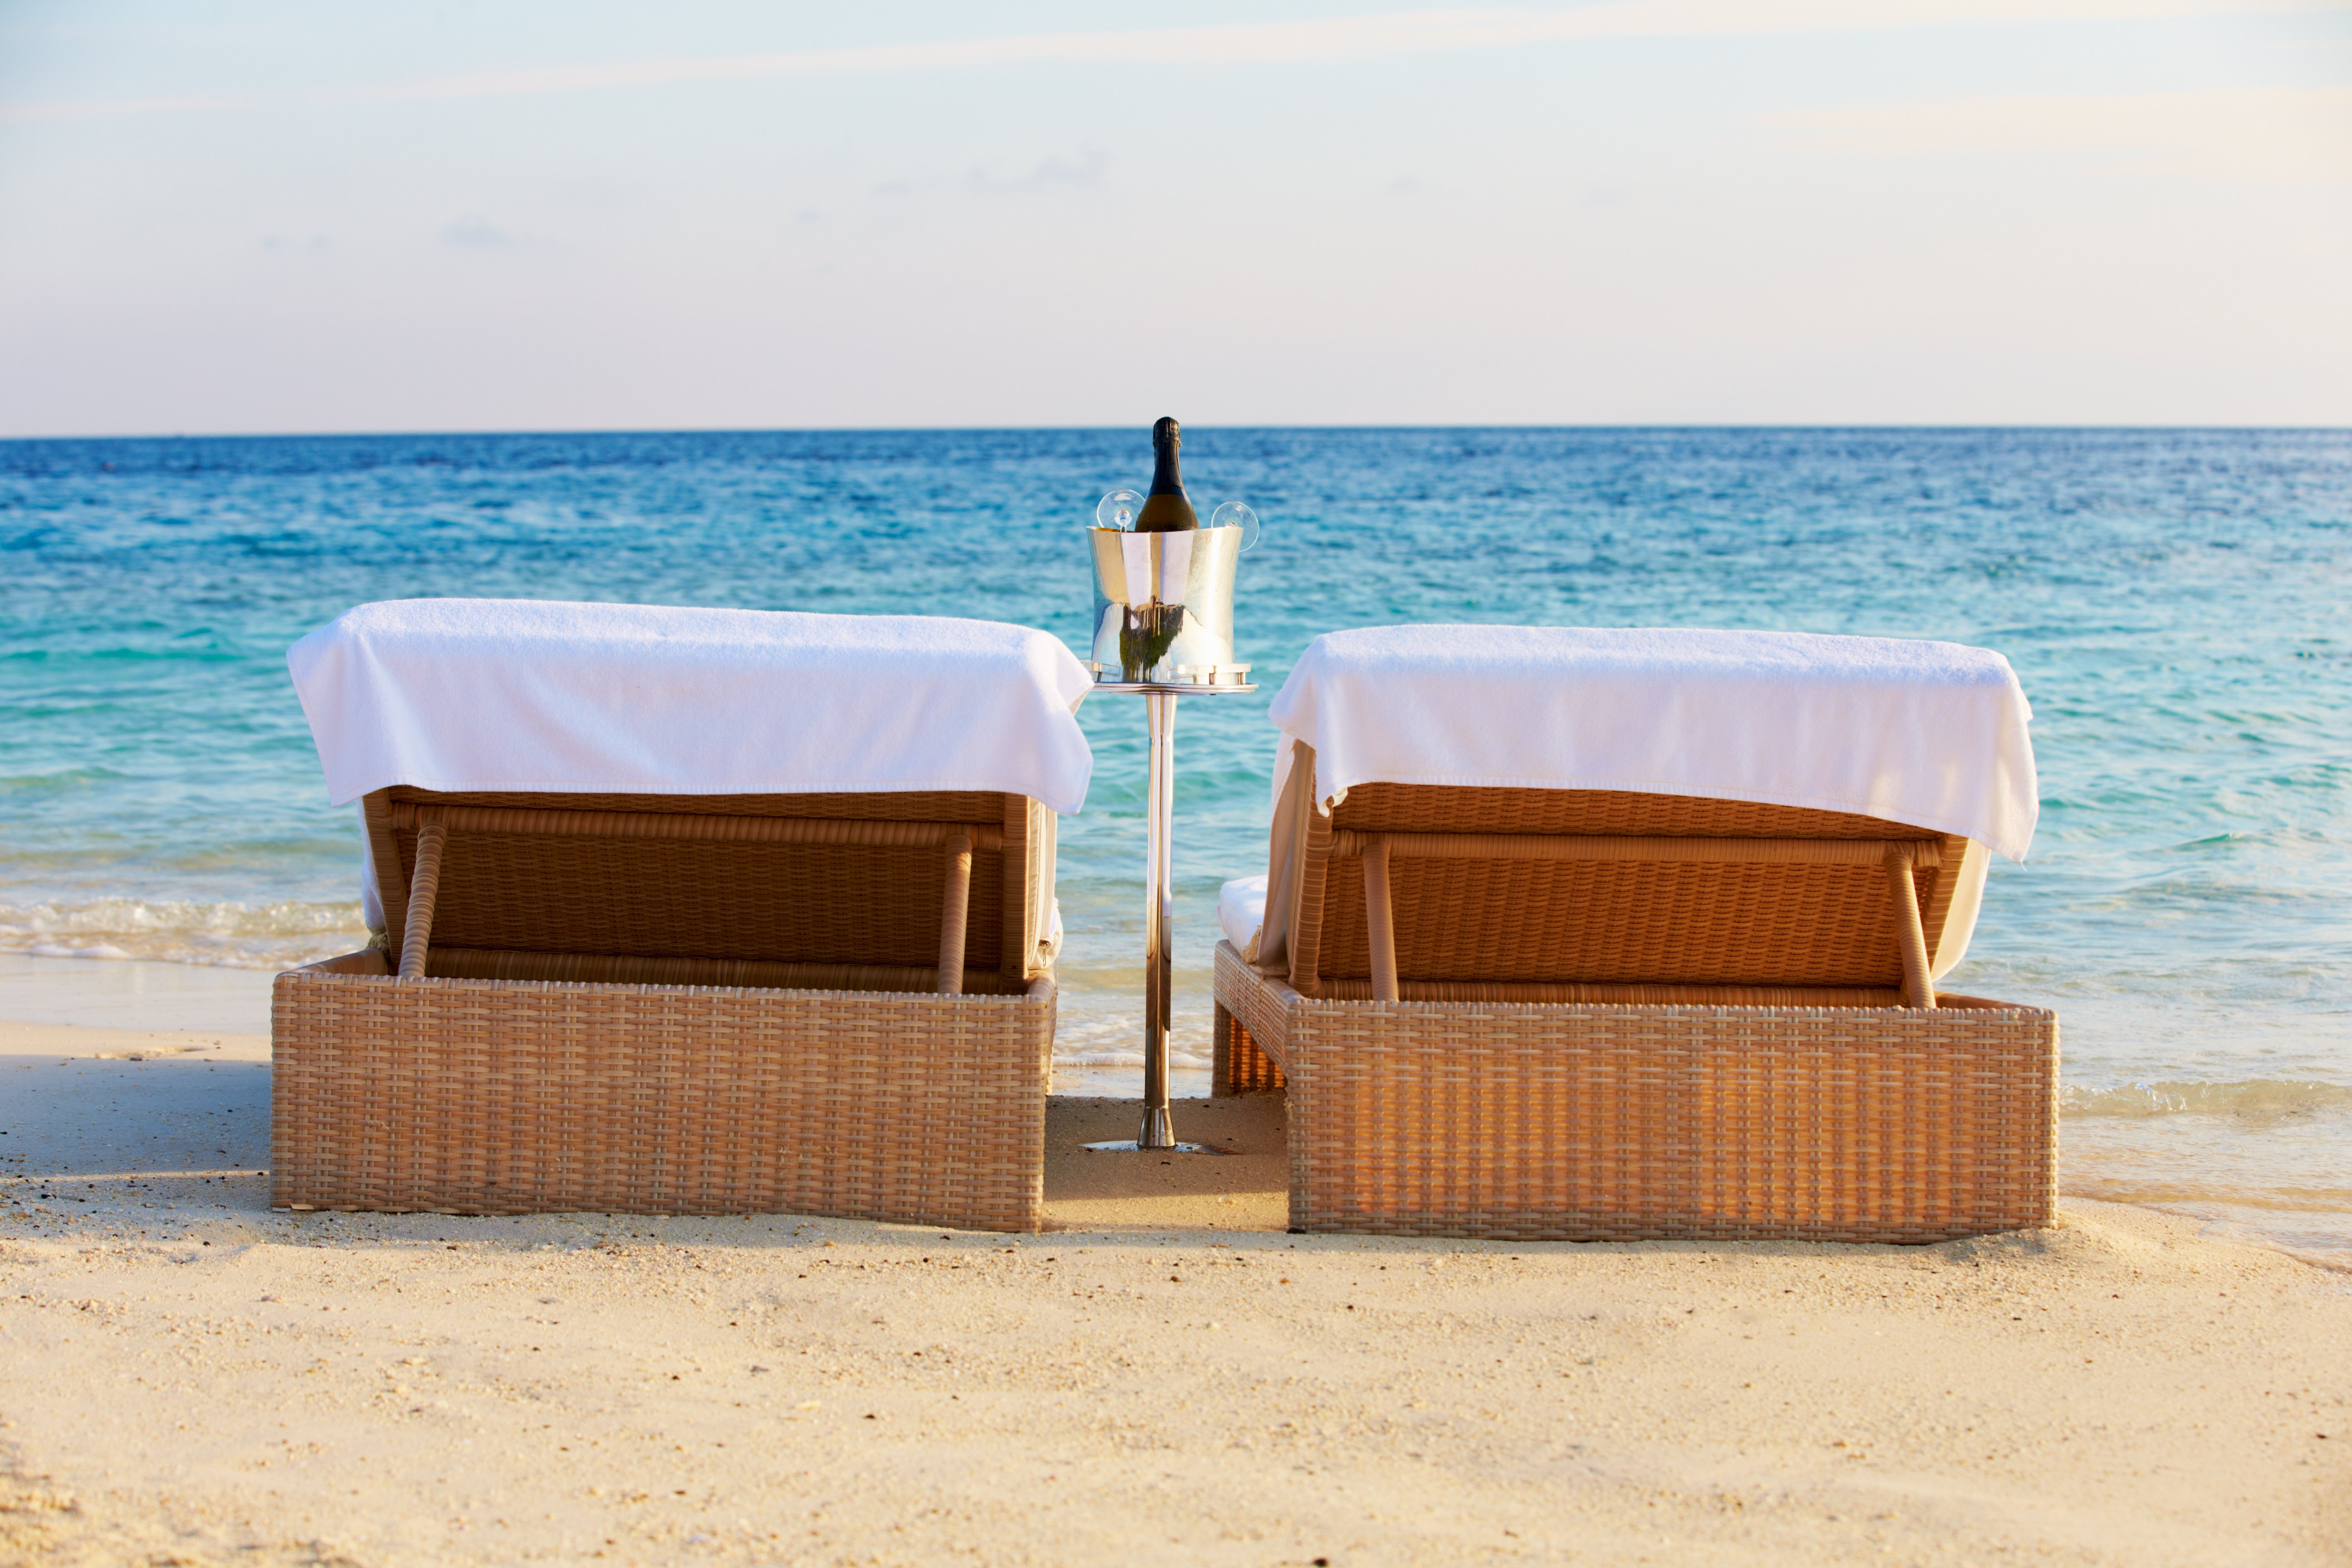 Loungers At Edge Of Tropical Sea With Champagne Bucket